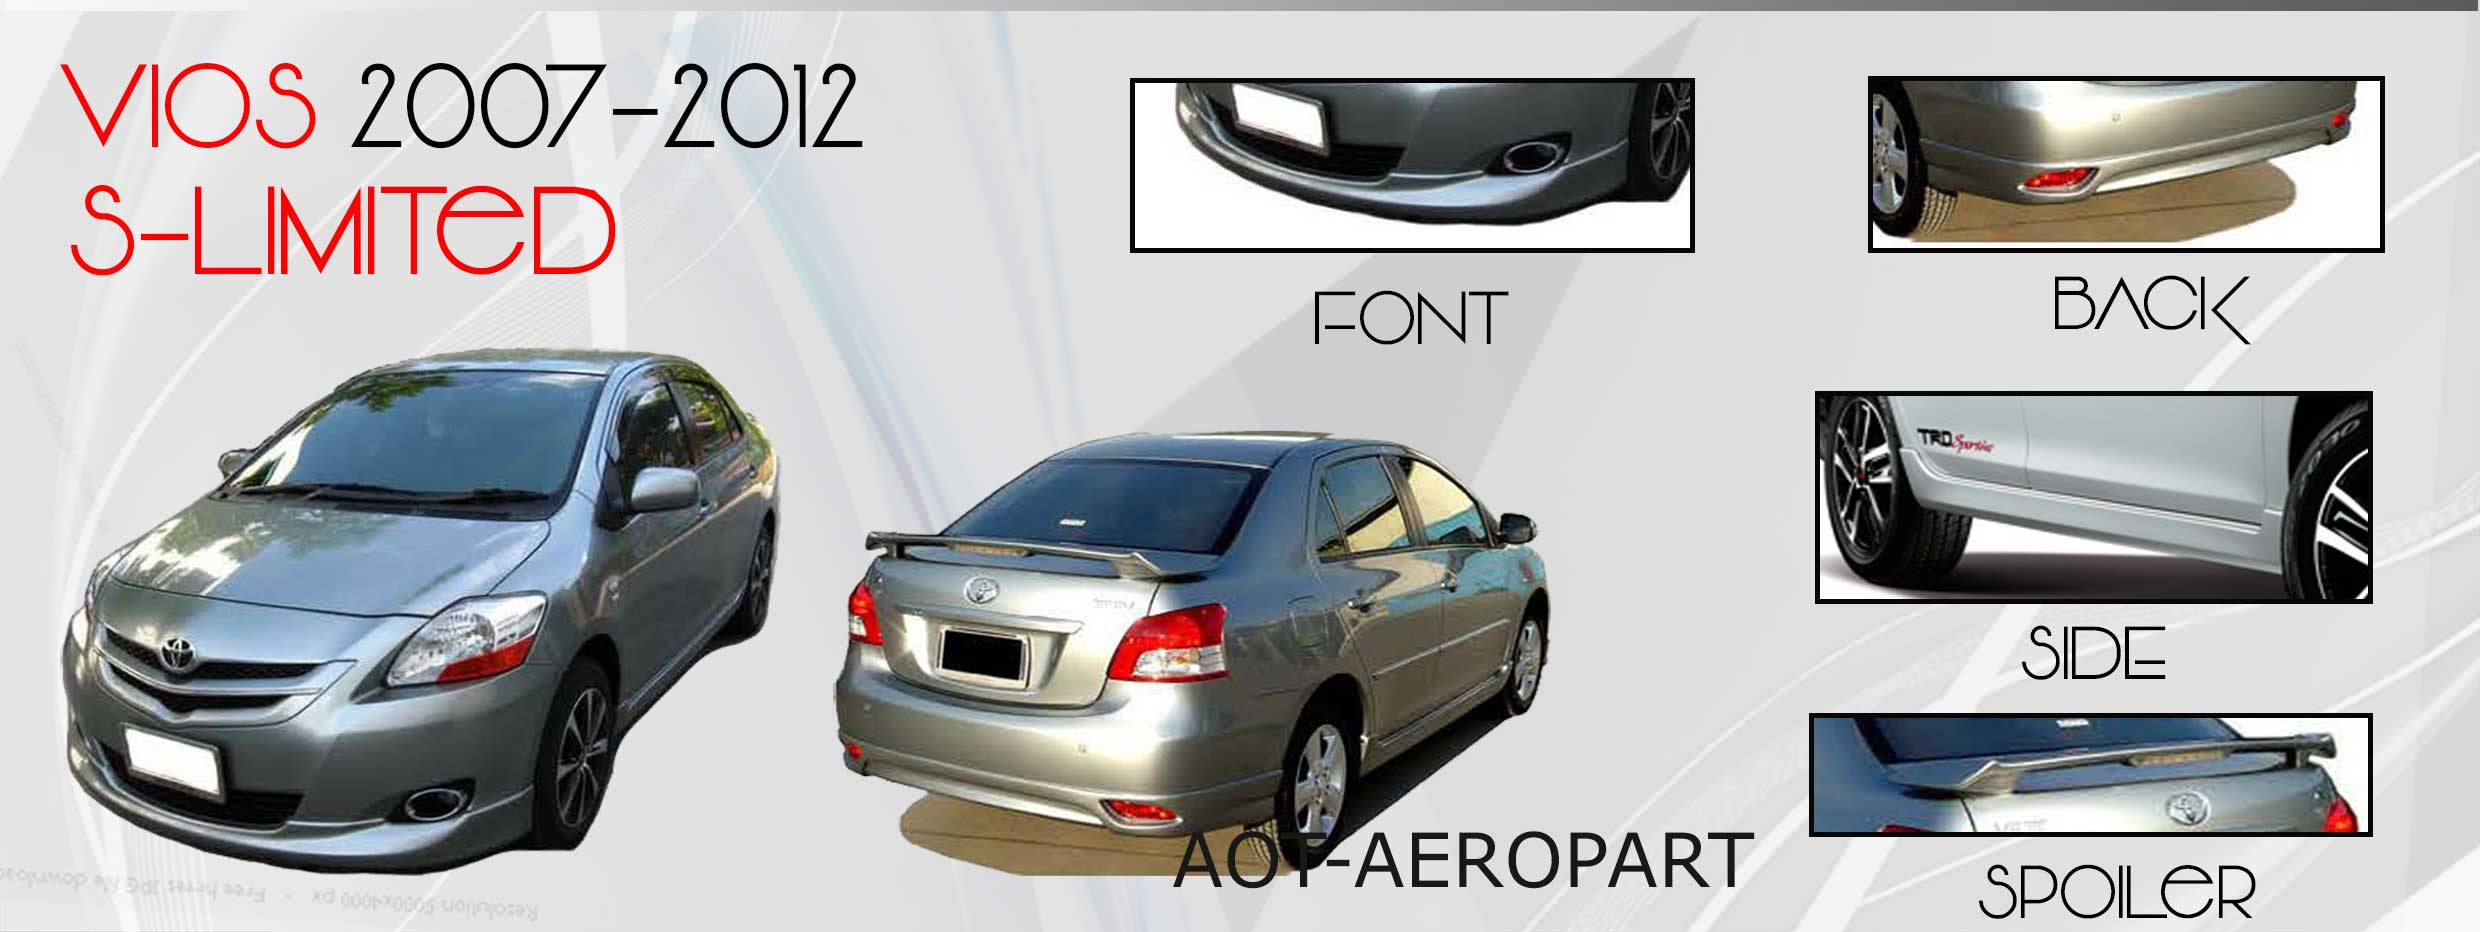 Vios S-limited